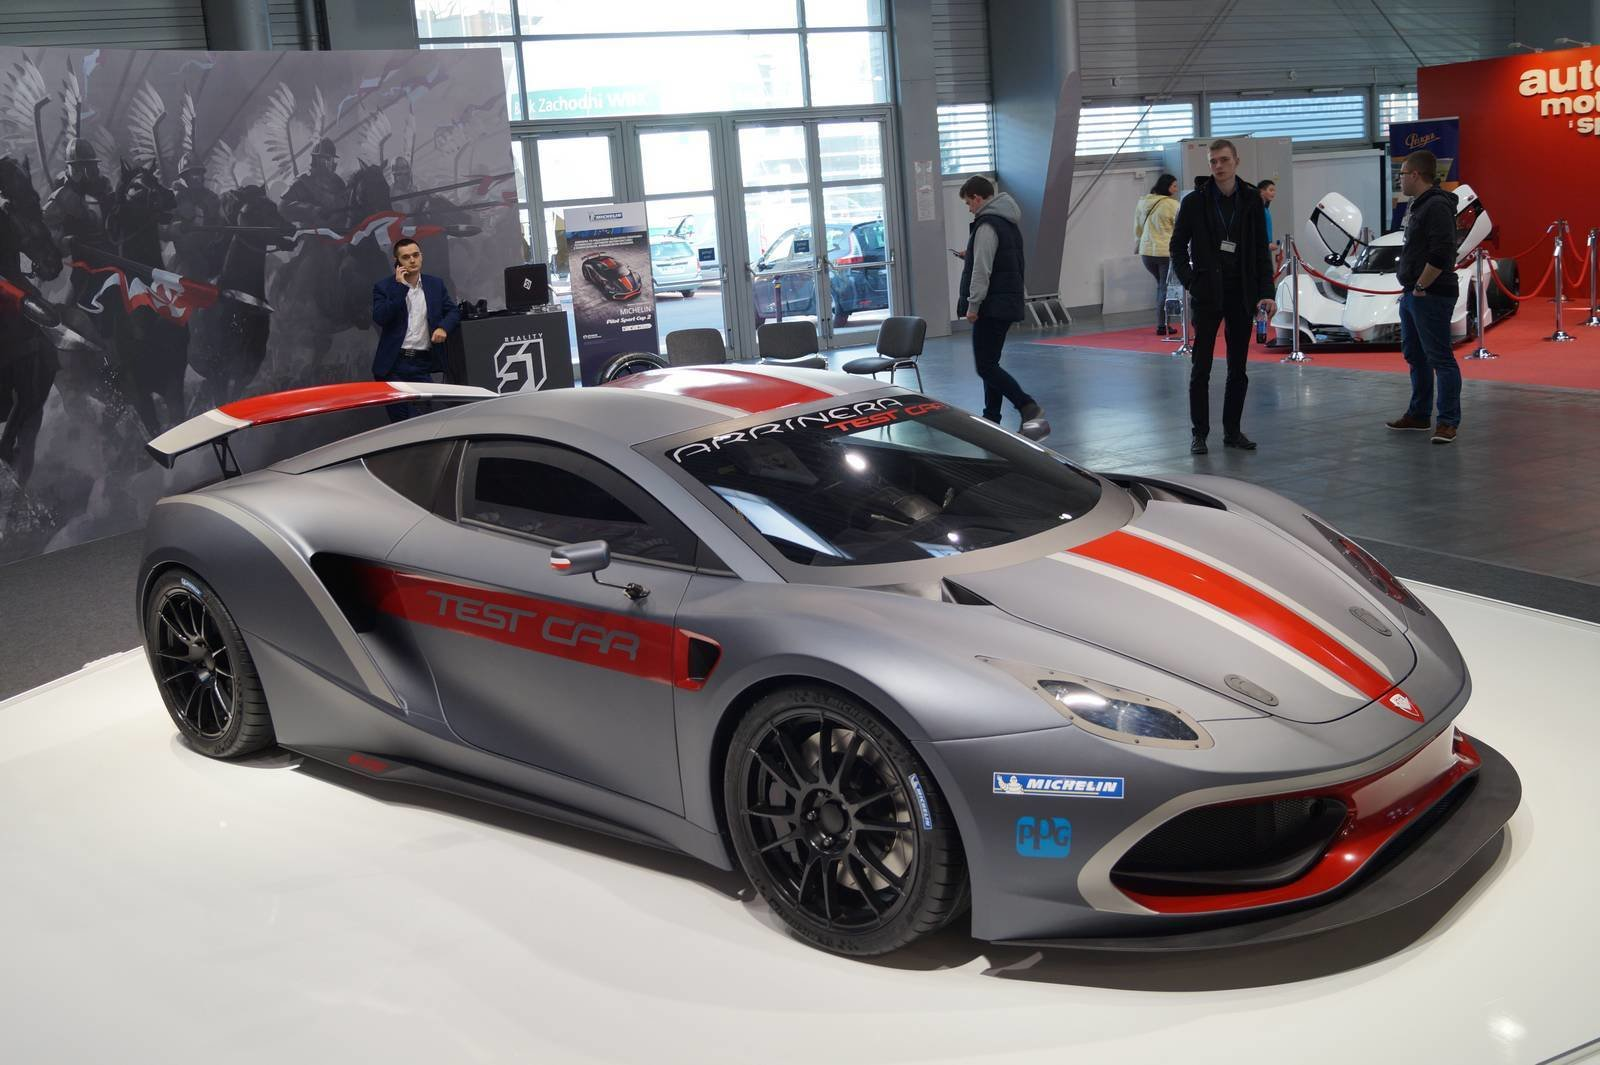 Latest First Polish Supercar Arrinera Hussarya Unveiled In Poznan Free Download